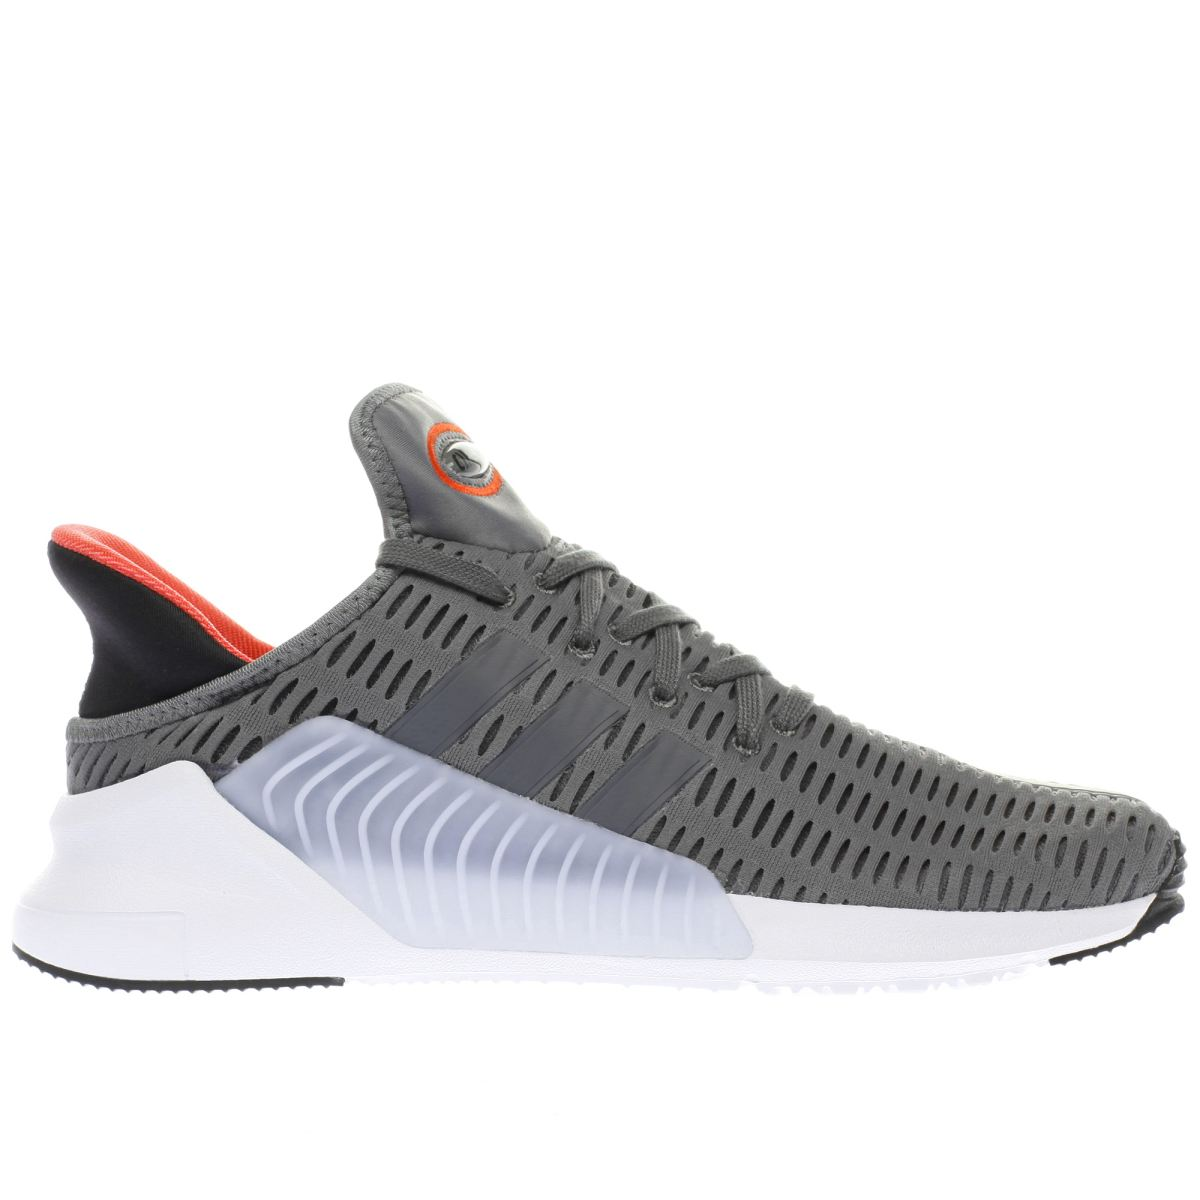 adidas grey climacool 02/17 trainers